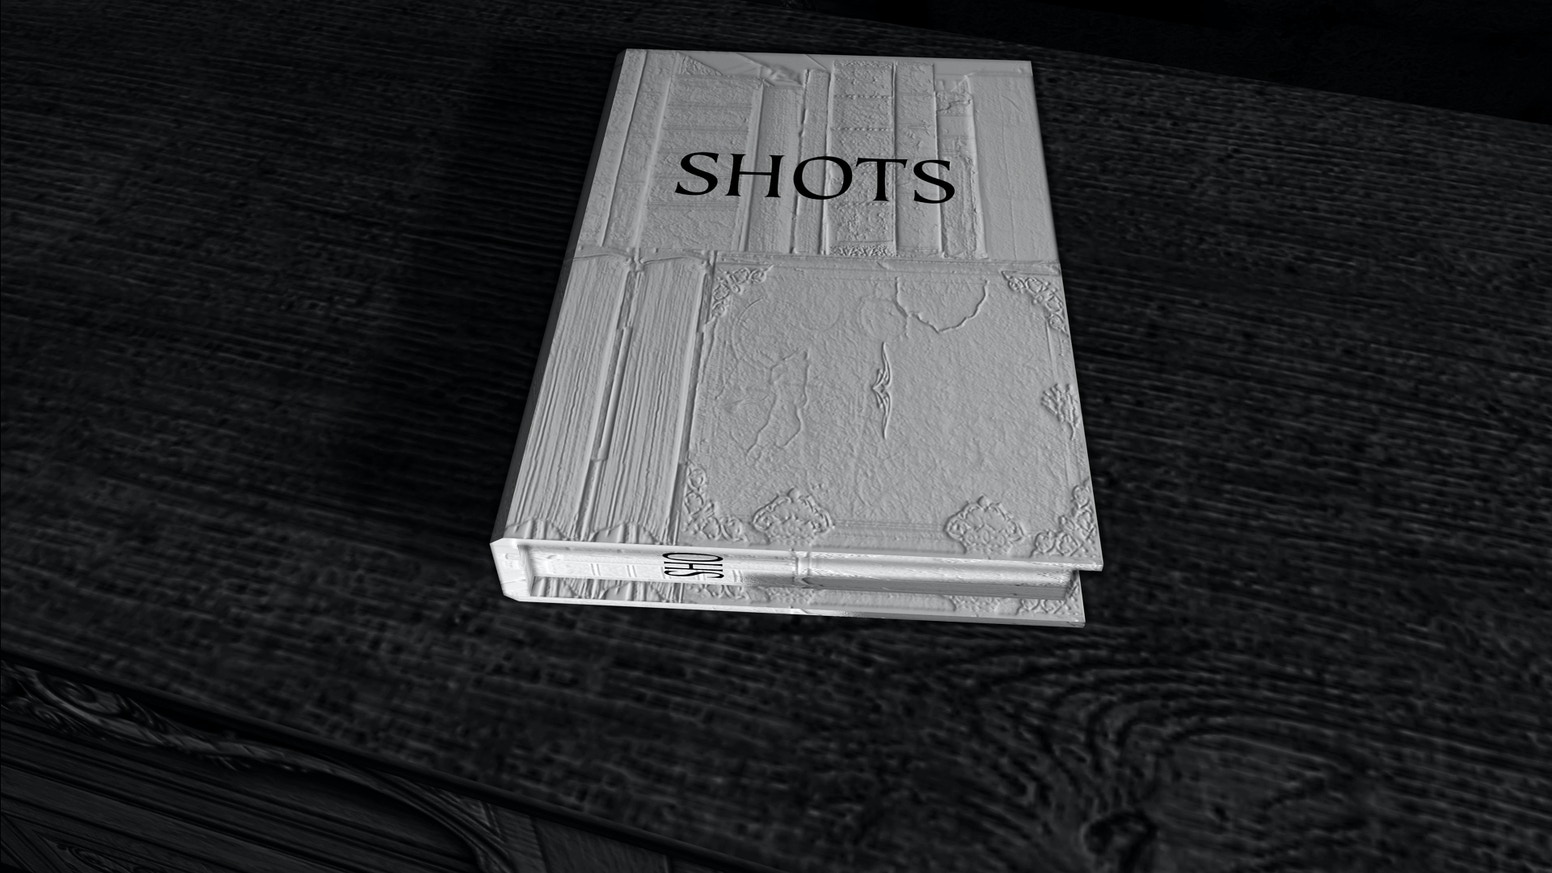 A beautifully produced hardcover book edited by Russell Joslin featuring photography from the issues of SHOTS Magazine he has published